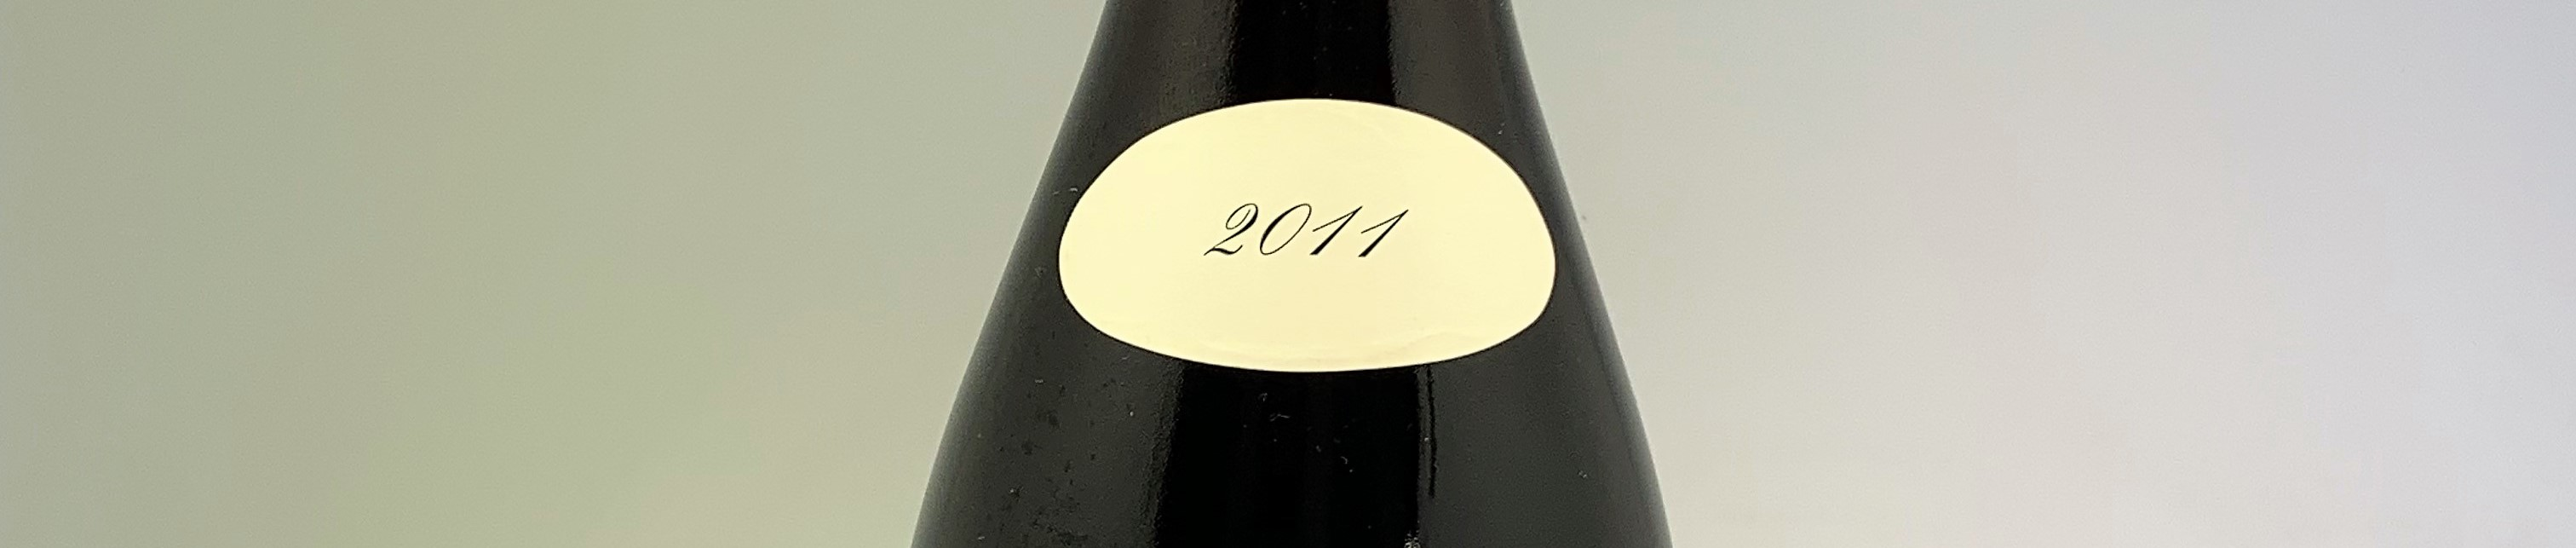 the picture shows a bottle of the 2011 vintage